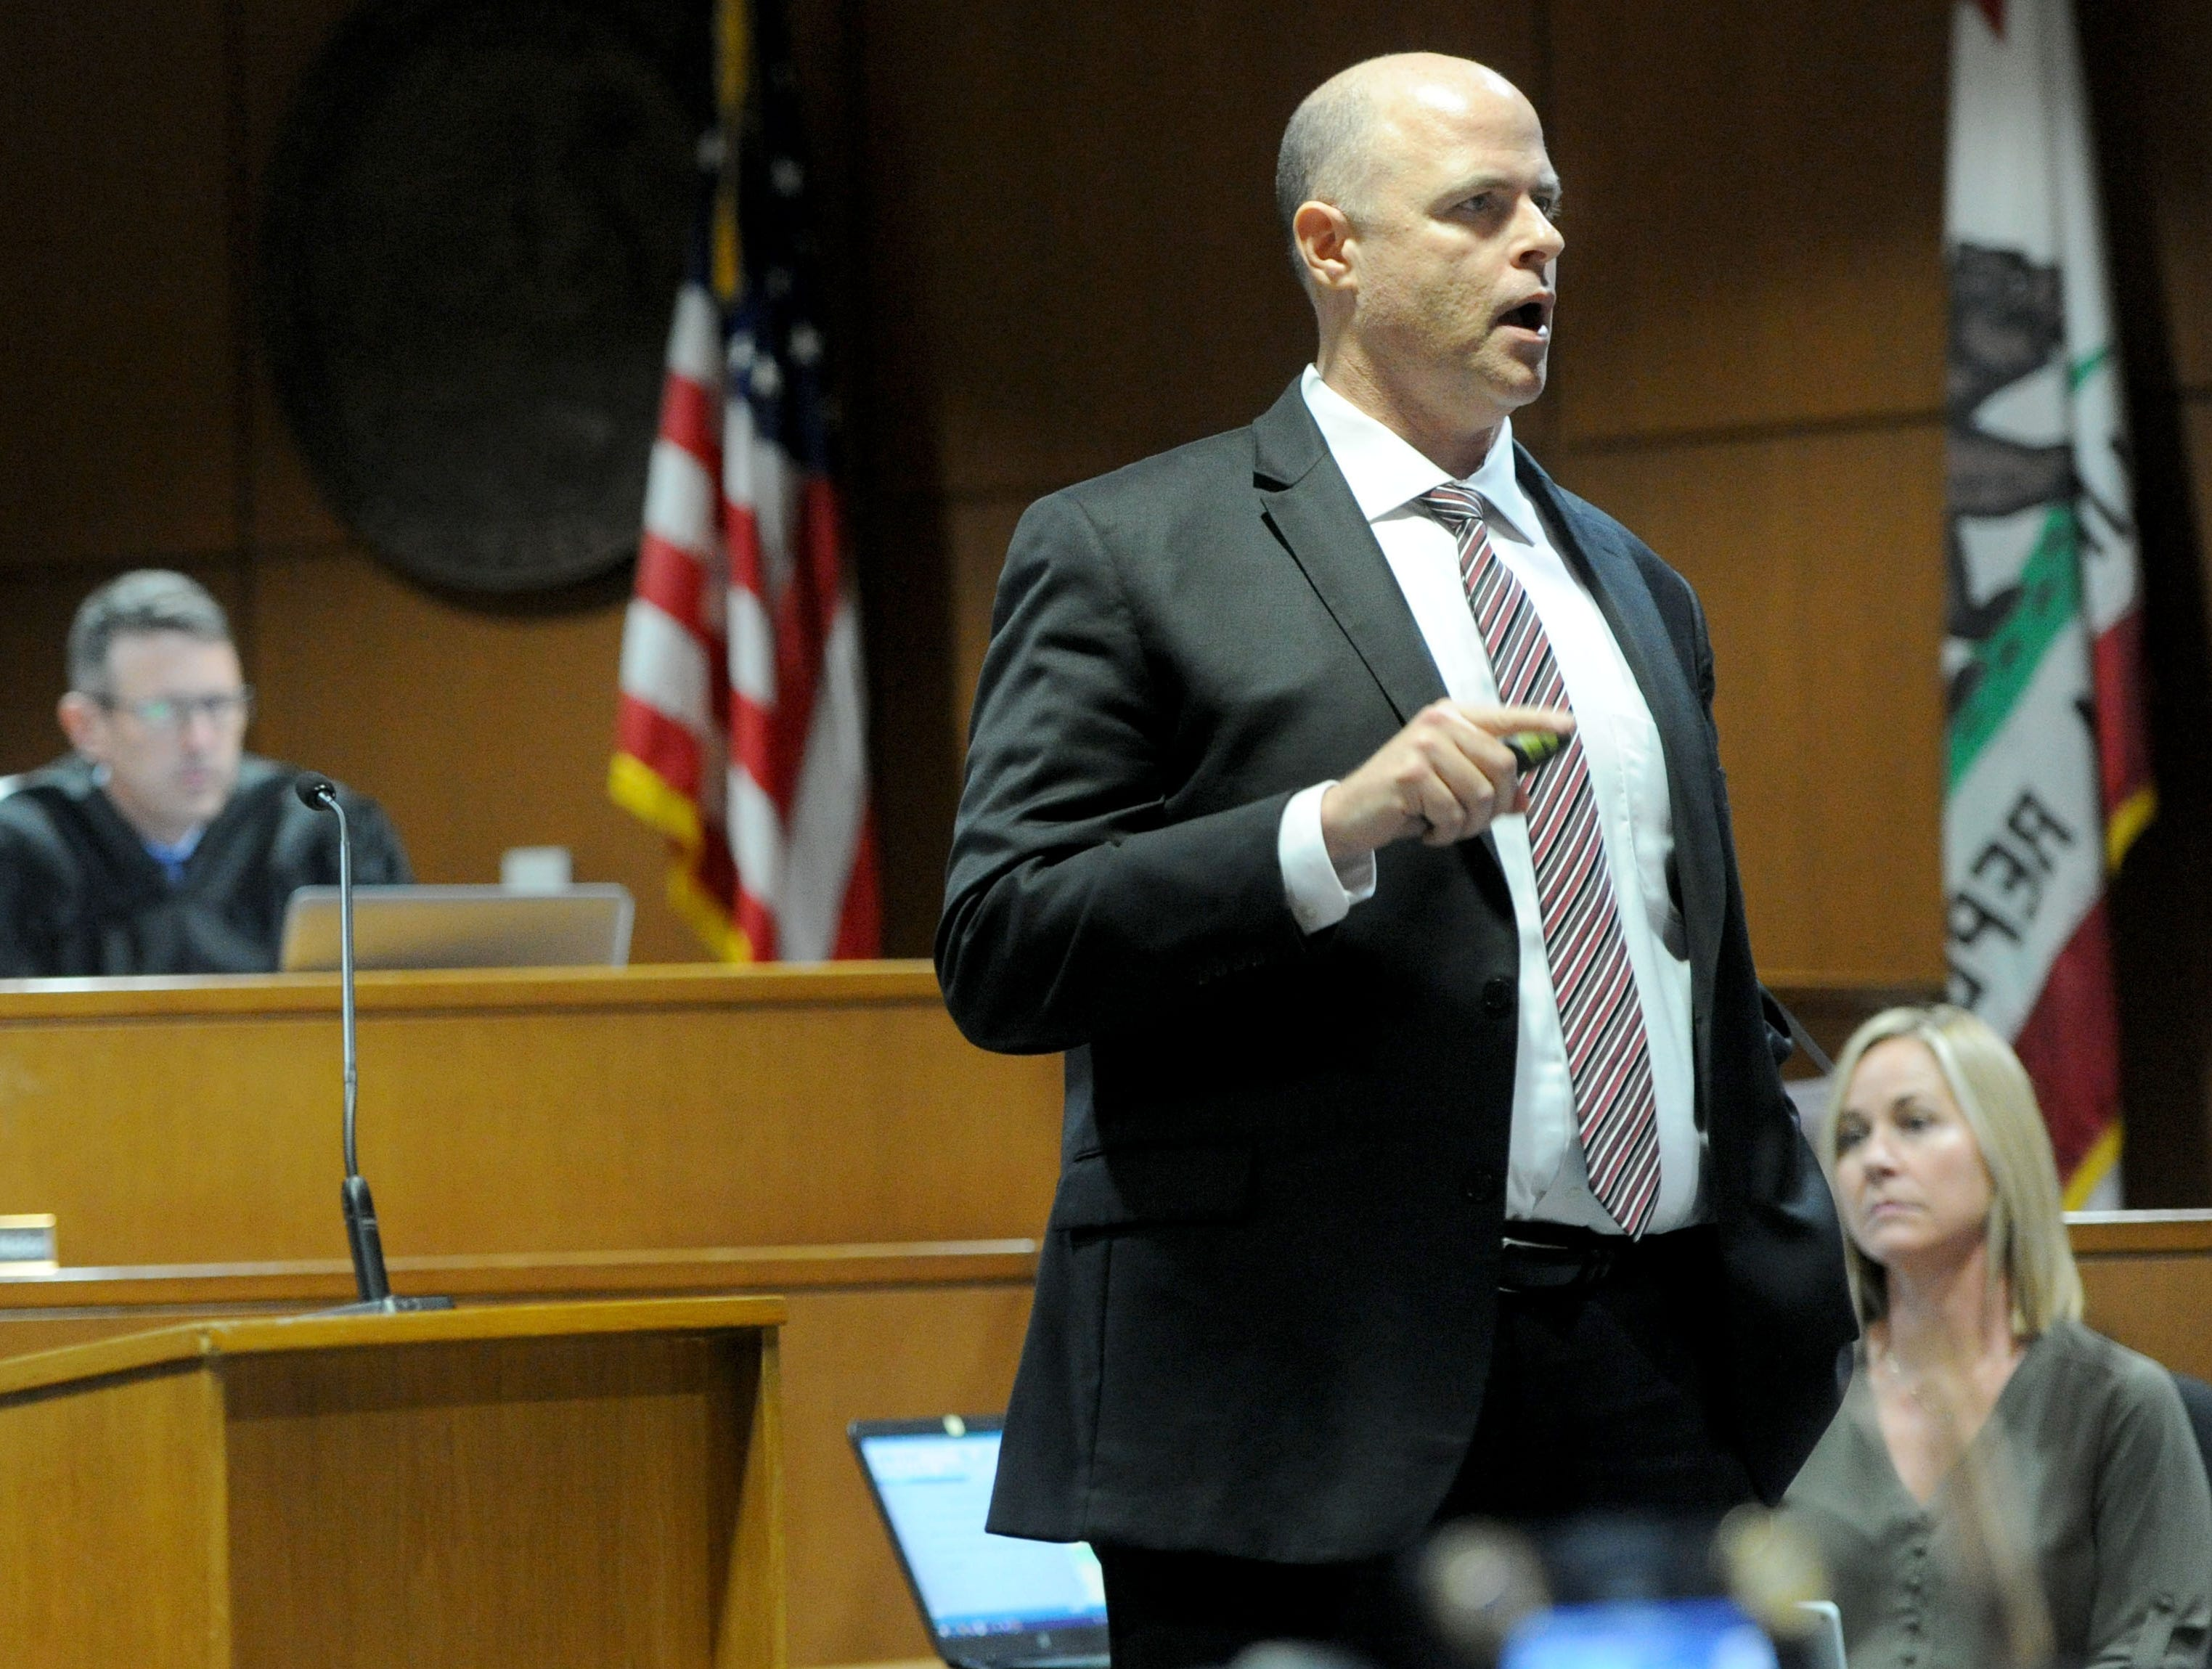 Senior Deputy District Attorney John Barrick looks at the jurors during his opening statements in Mayra Chavez's trial in Ventura County Superior Court. She is accused of killing her 3-year-old daughter Kimberly Lopez.